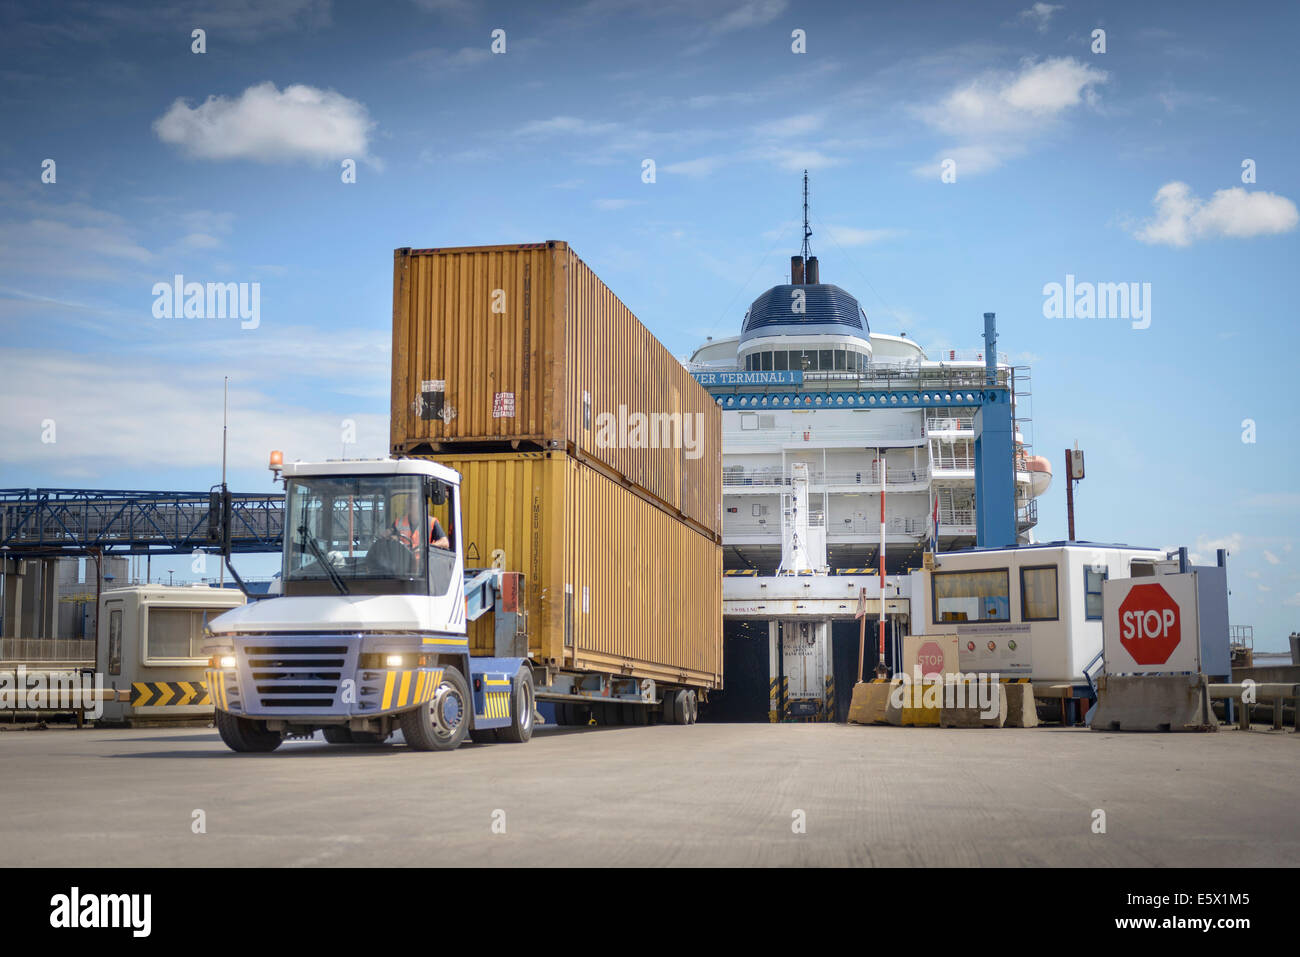 Truck unloading shipping containers from ship to port - Stock Image